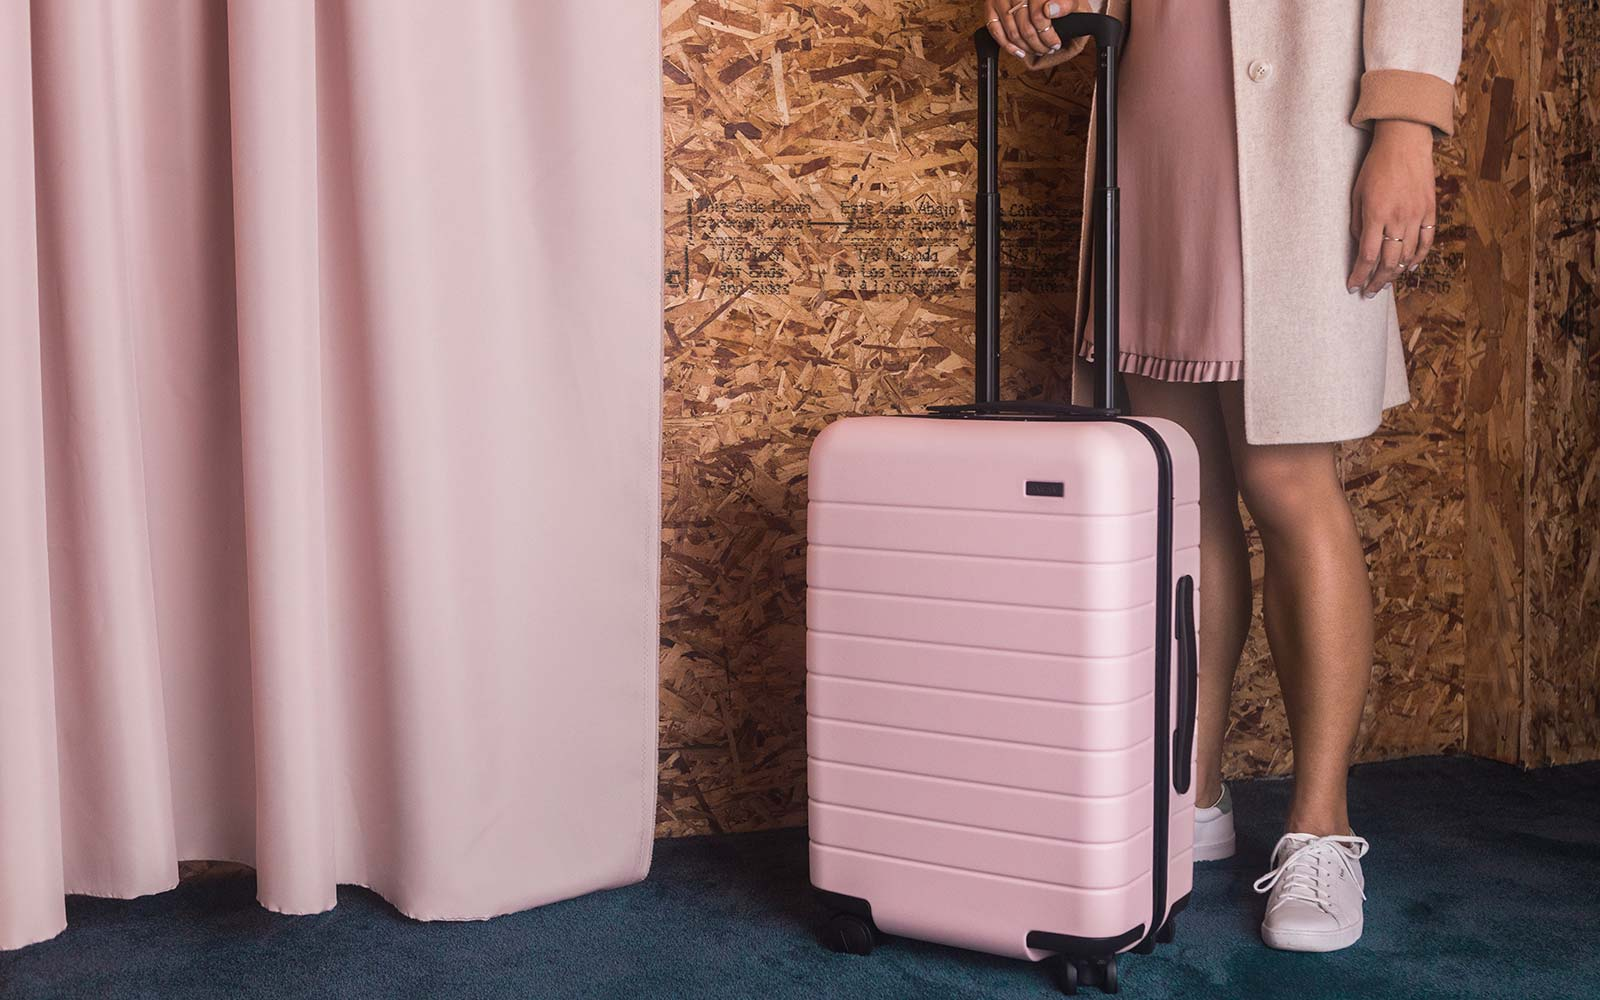 blush-millennial-pink-away-luggage-awayblush1017.jpg